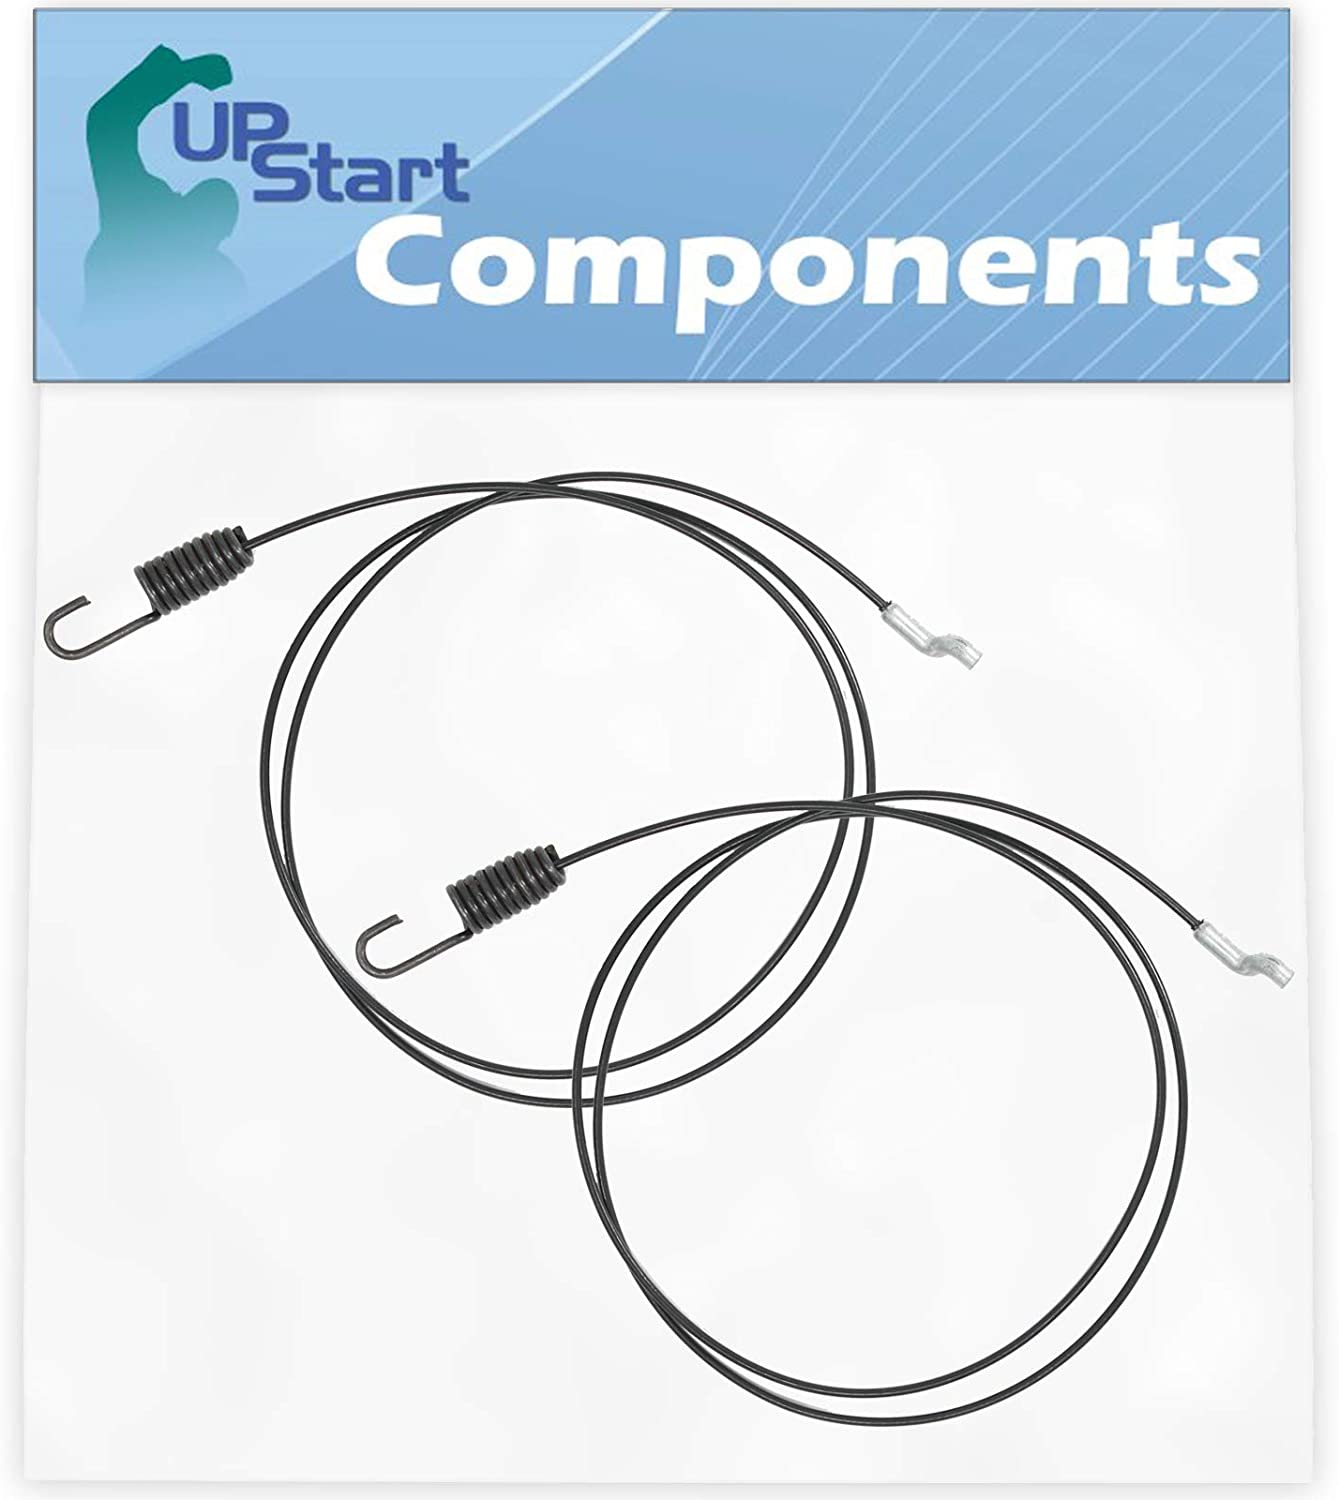 UpStart Components 2-Pack 946-04229B Clutch Cable Replacement for MTD 31AS53TF799 (247.886913)(2012) Snowblower - Compatible with 746-04229 Clutch Drive Cable